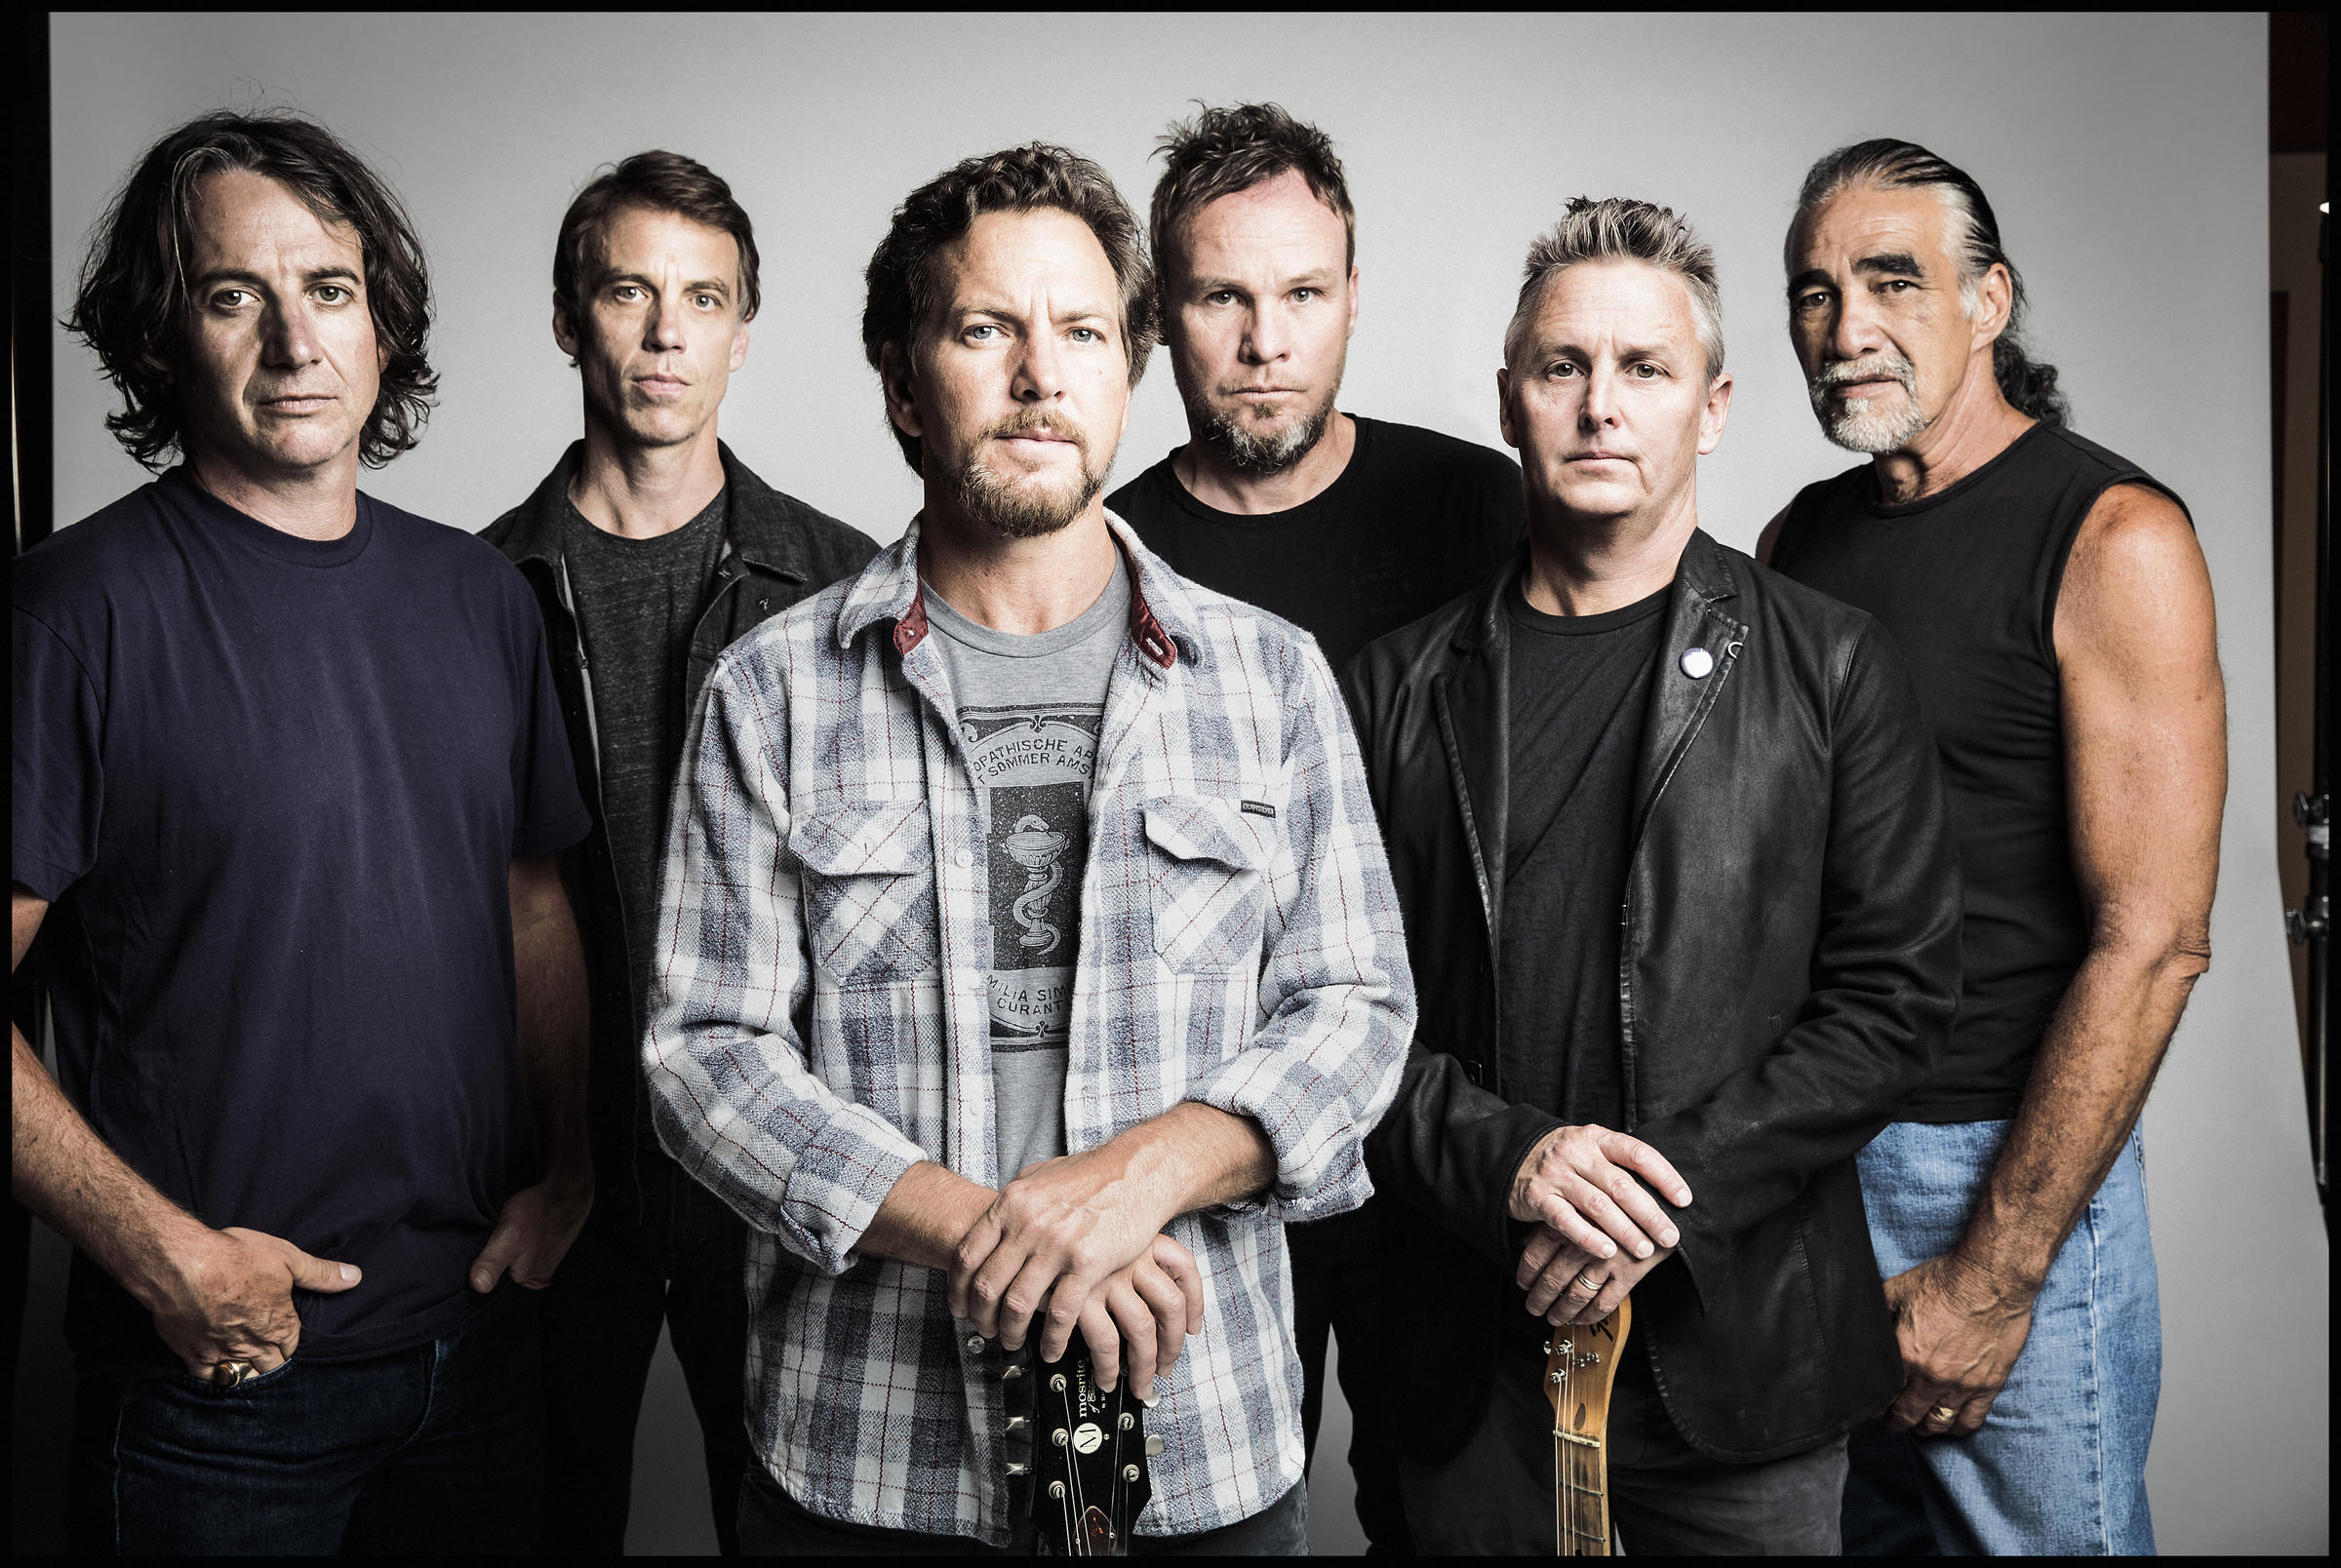 Pearl Jam criticized for poster featuring dead Trump, burning White House